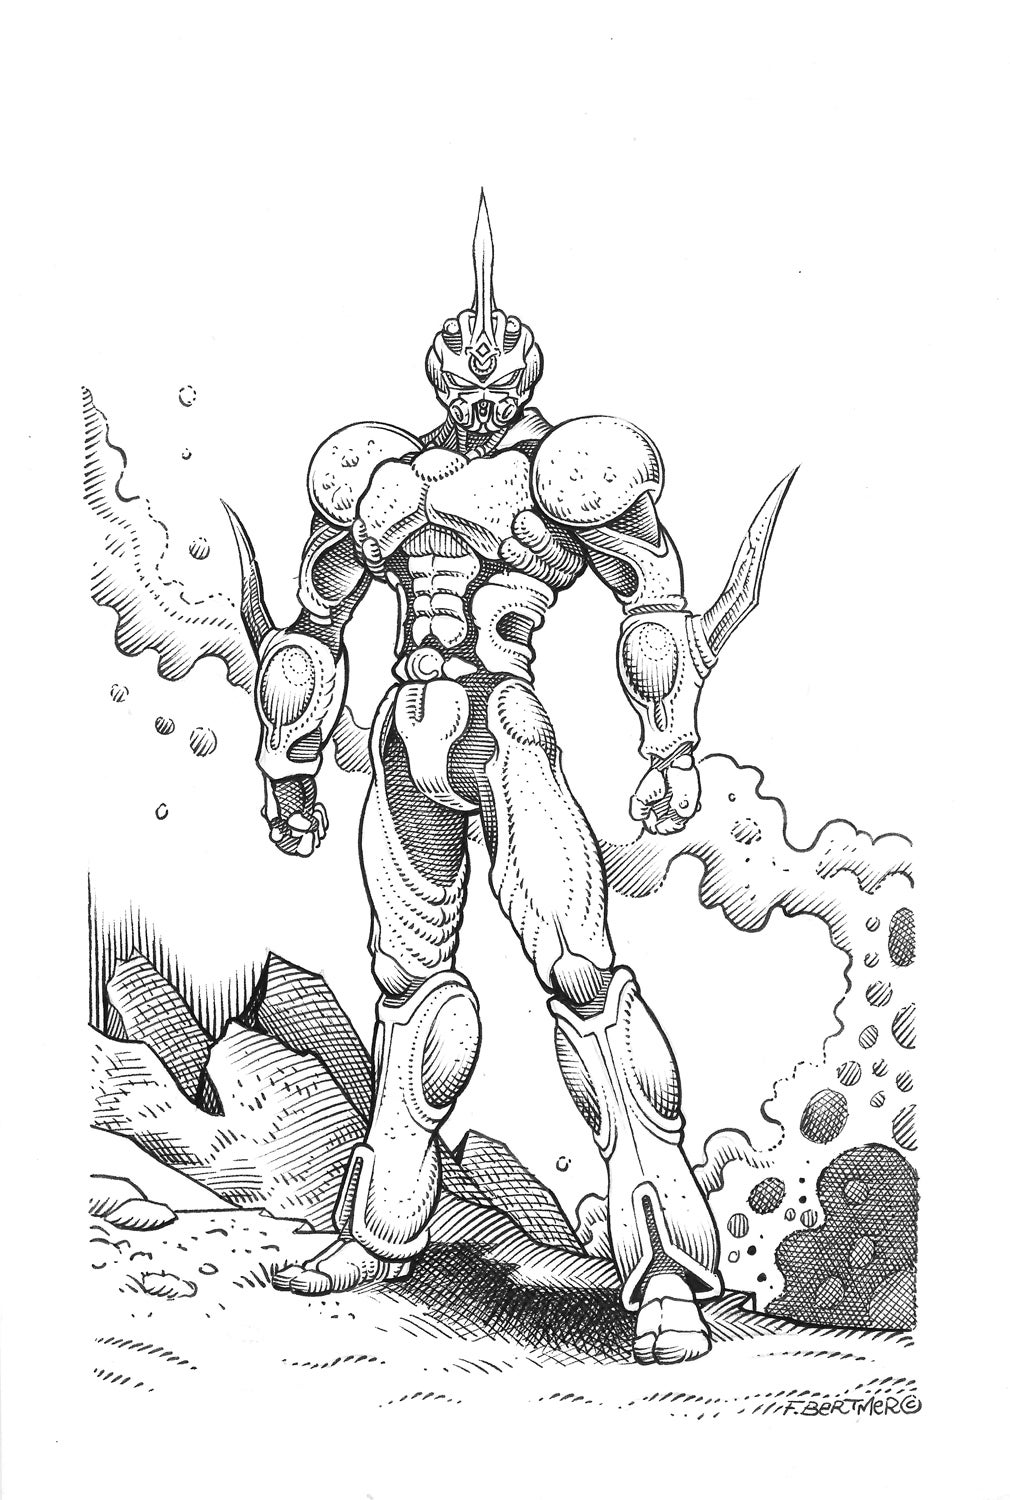 Image of Guyver - Original Art